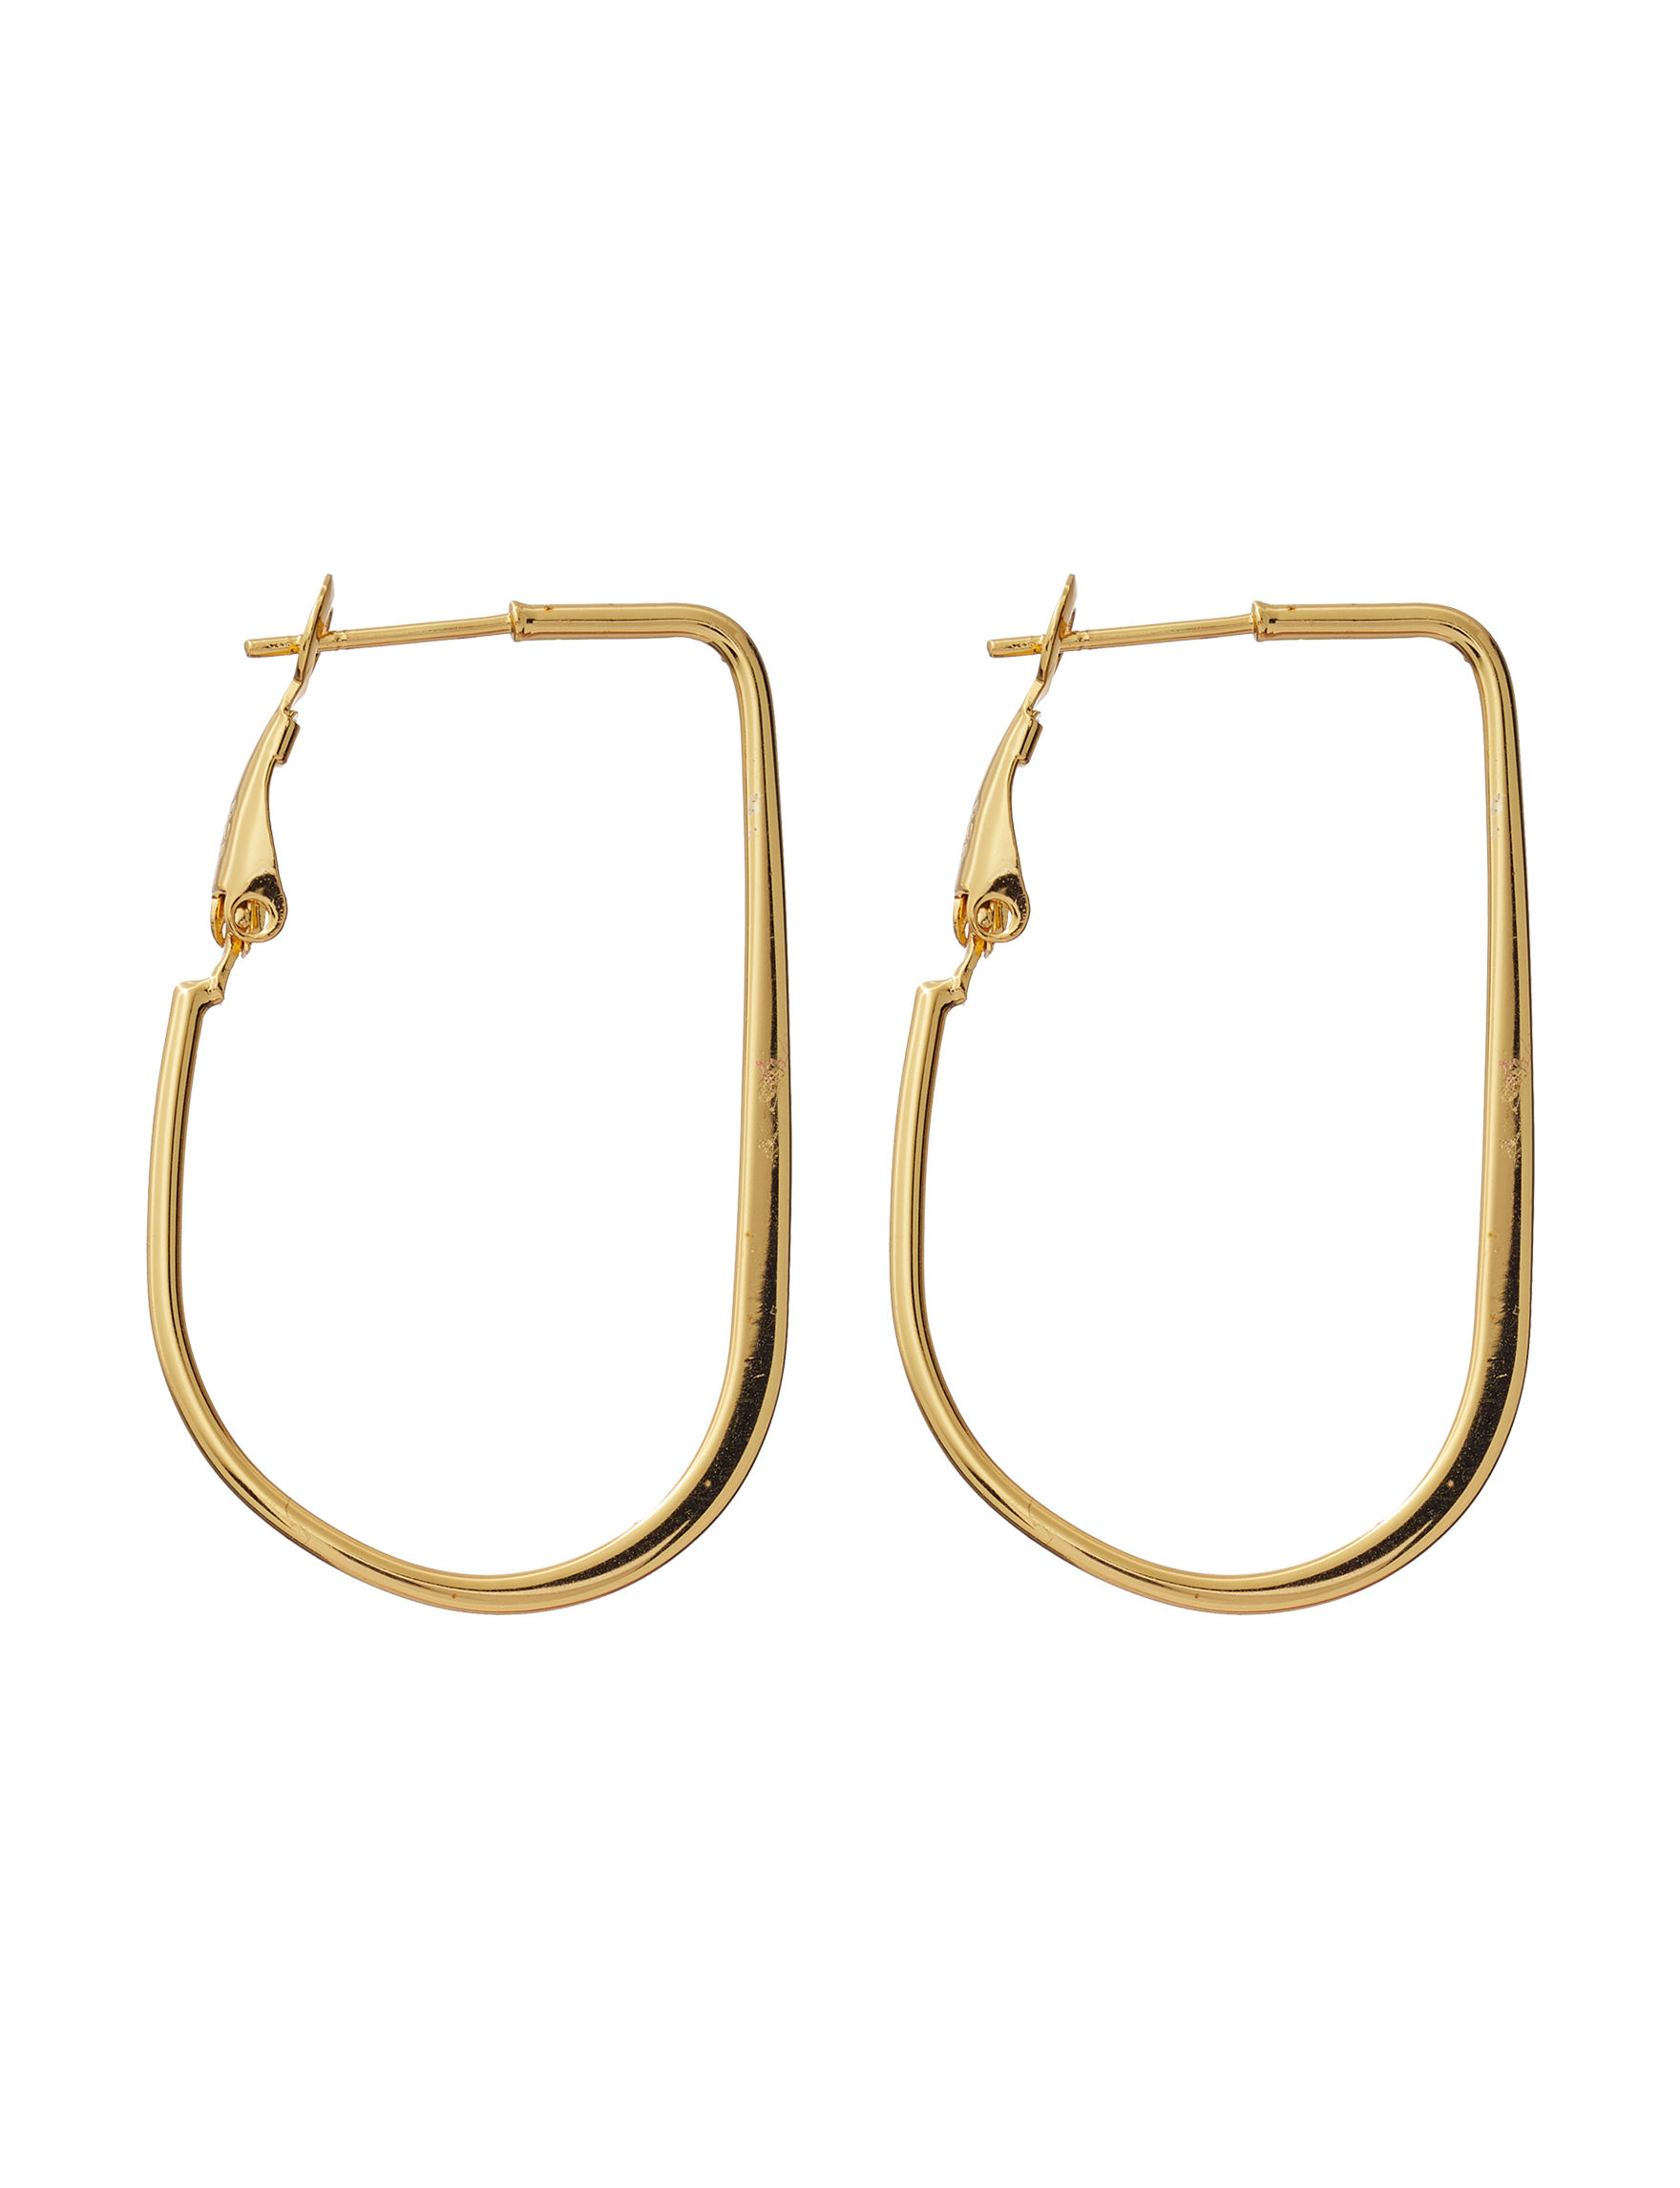 Danecraft Gold Hoops Earrings Fine Jewelry